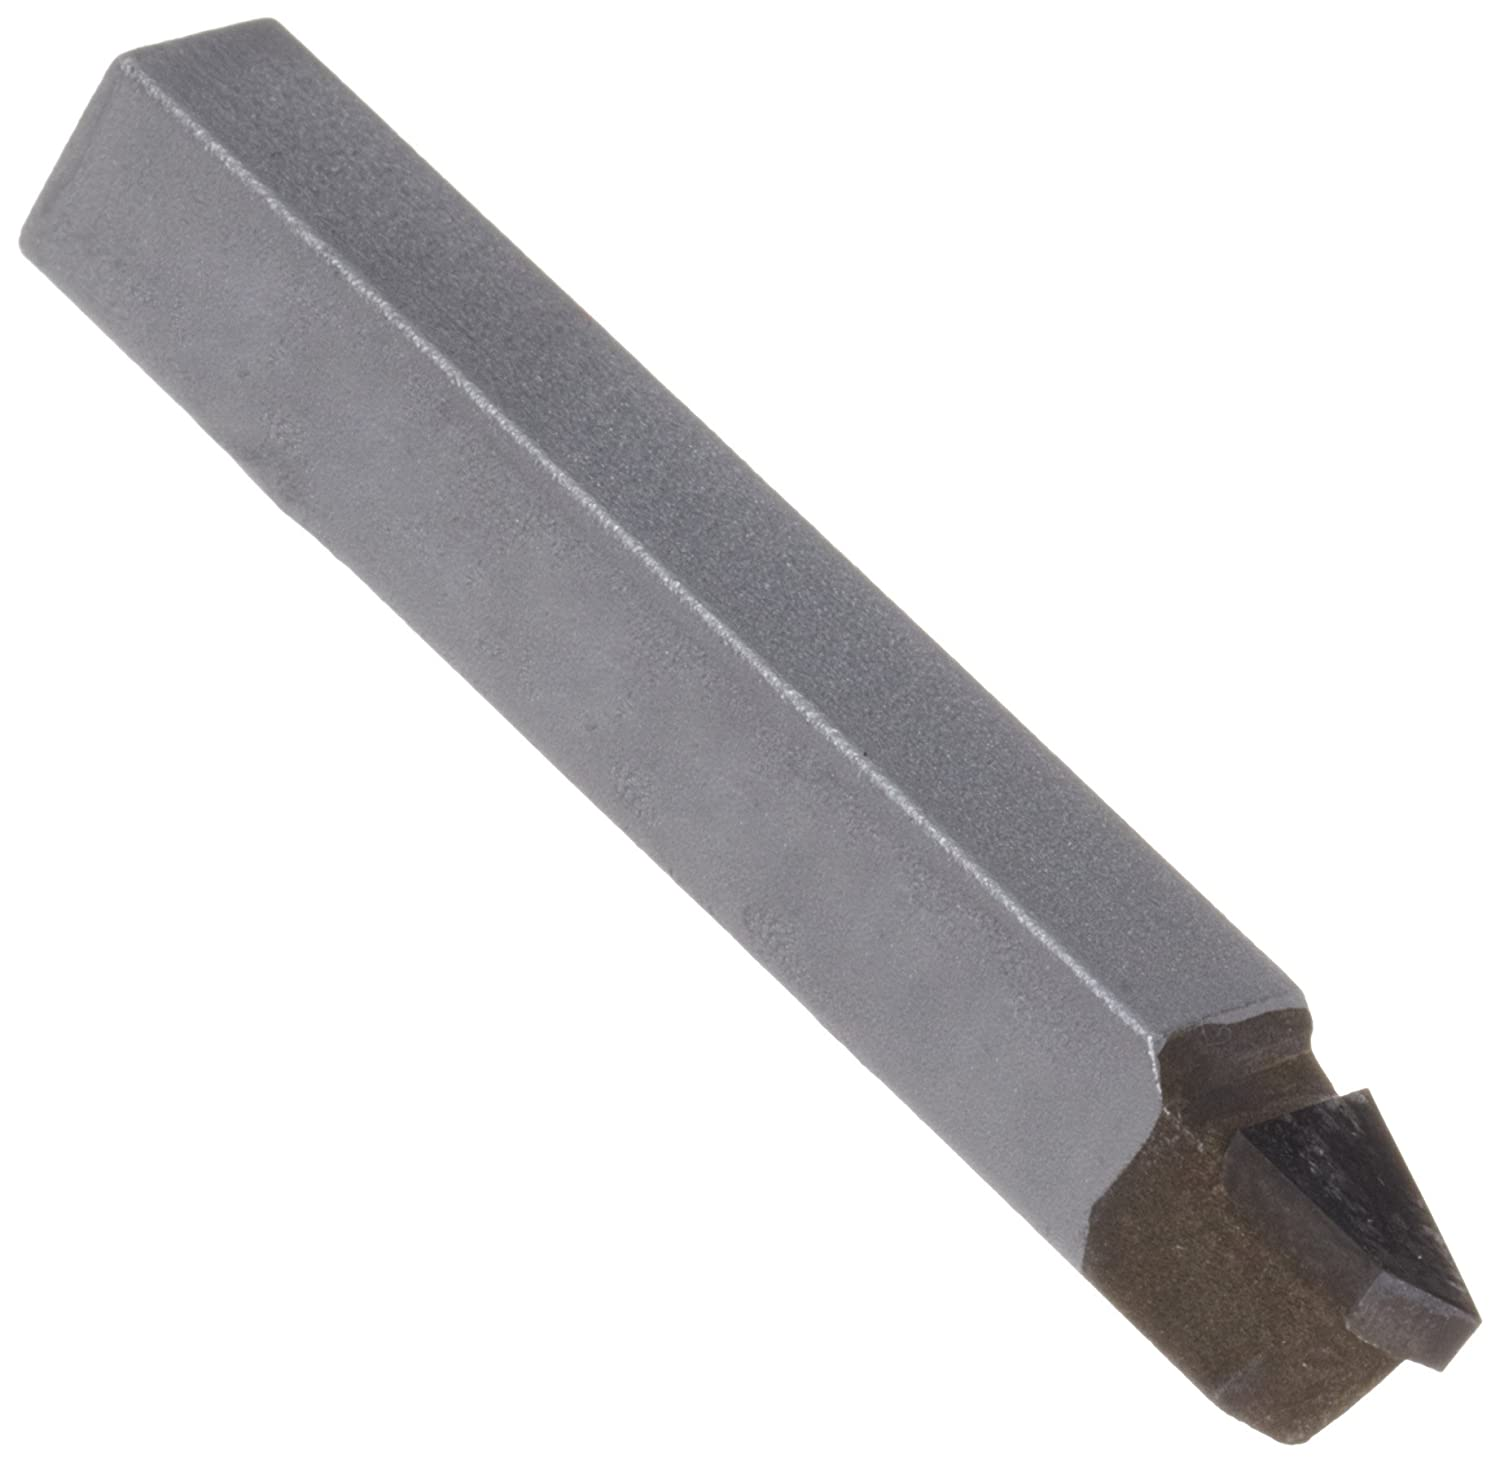 American Carbide Tool Carbide-Tipped Tool Bit For Offset Threading Right Hand,